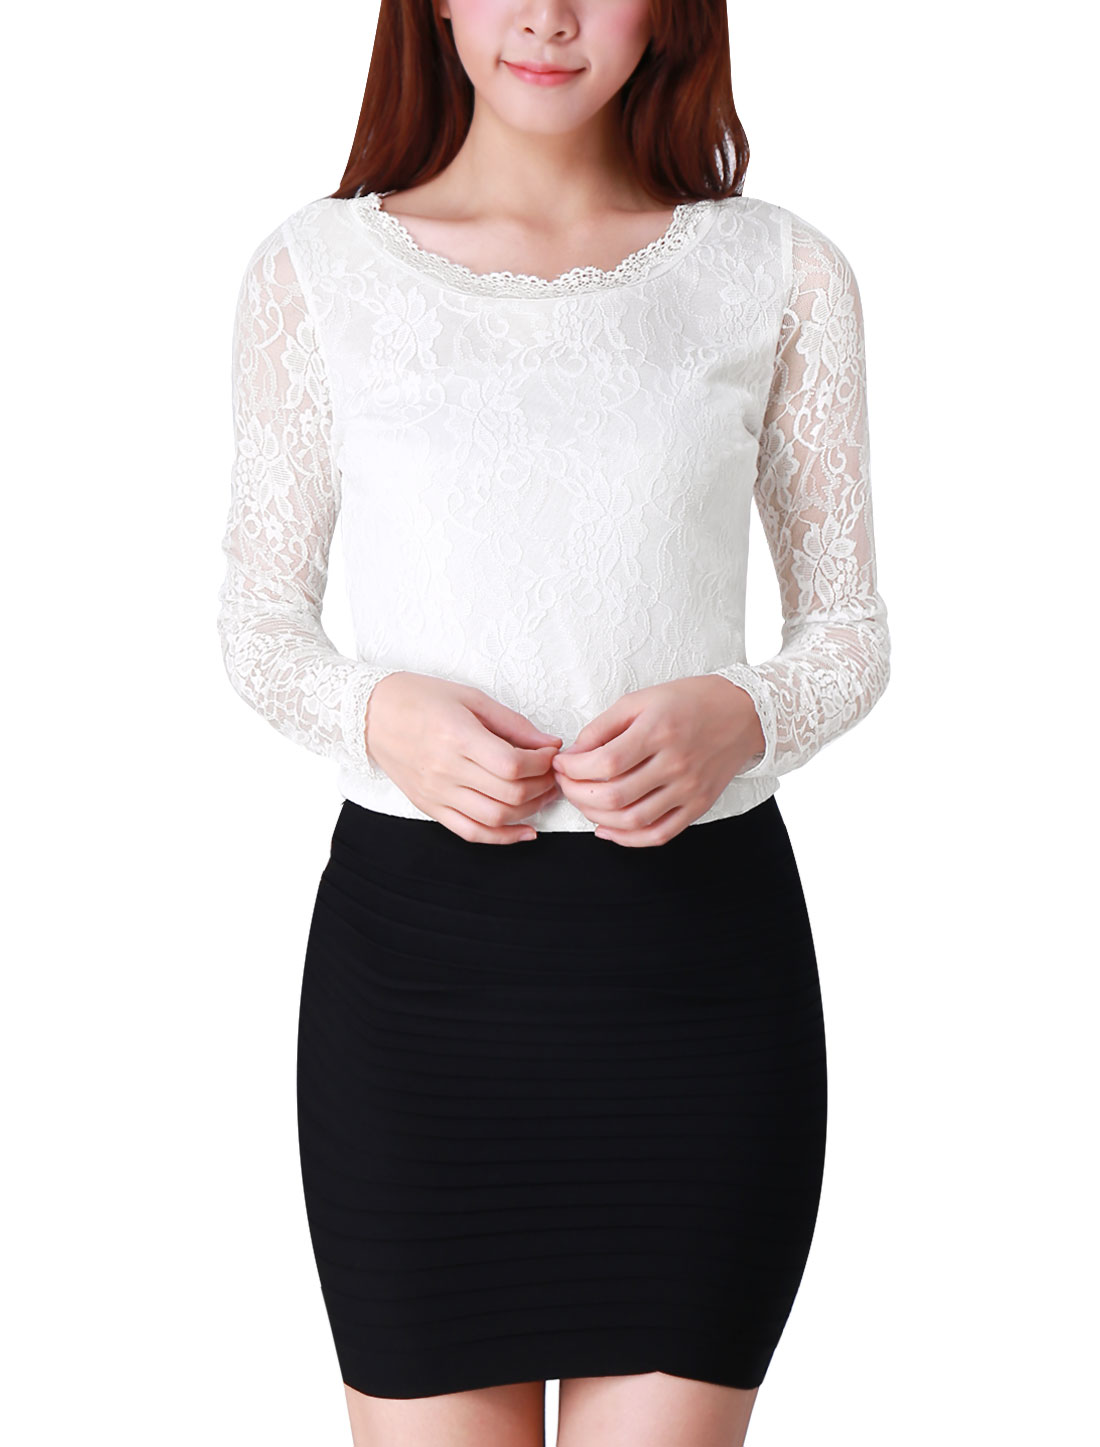 Women Slim Fit Long Sleeve Fully Lined See Through Lace Blouse White M